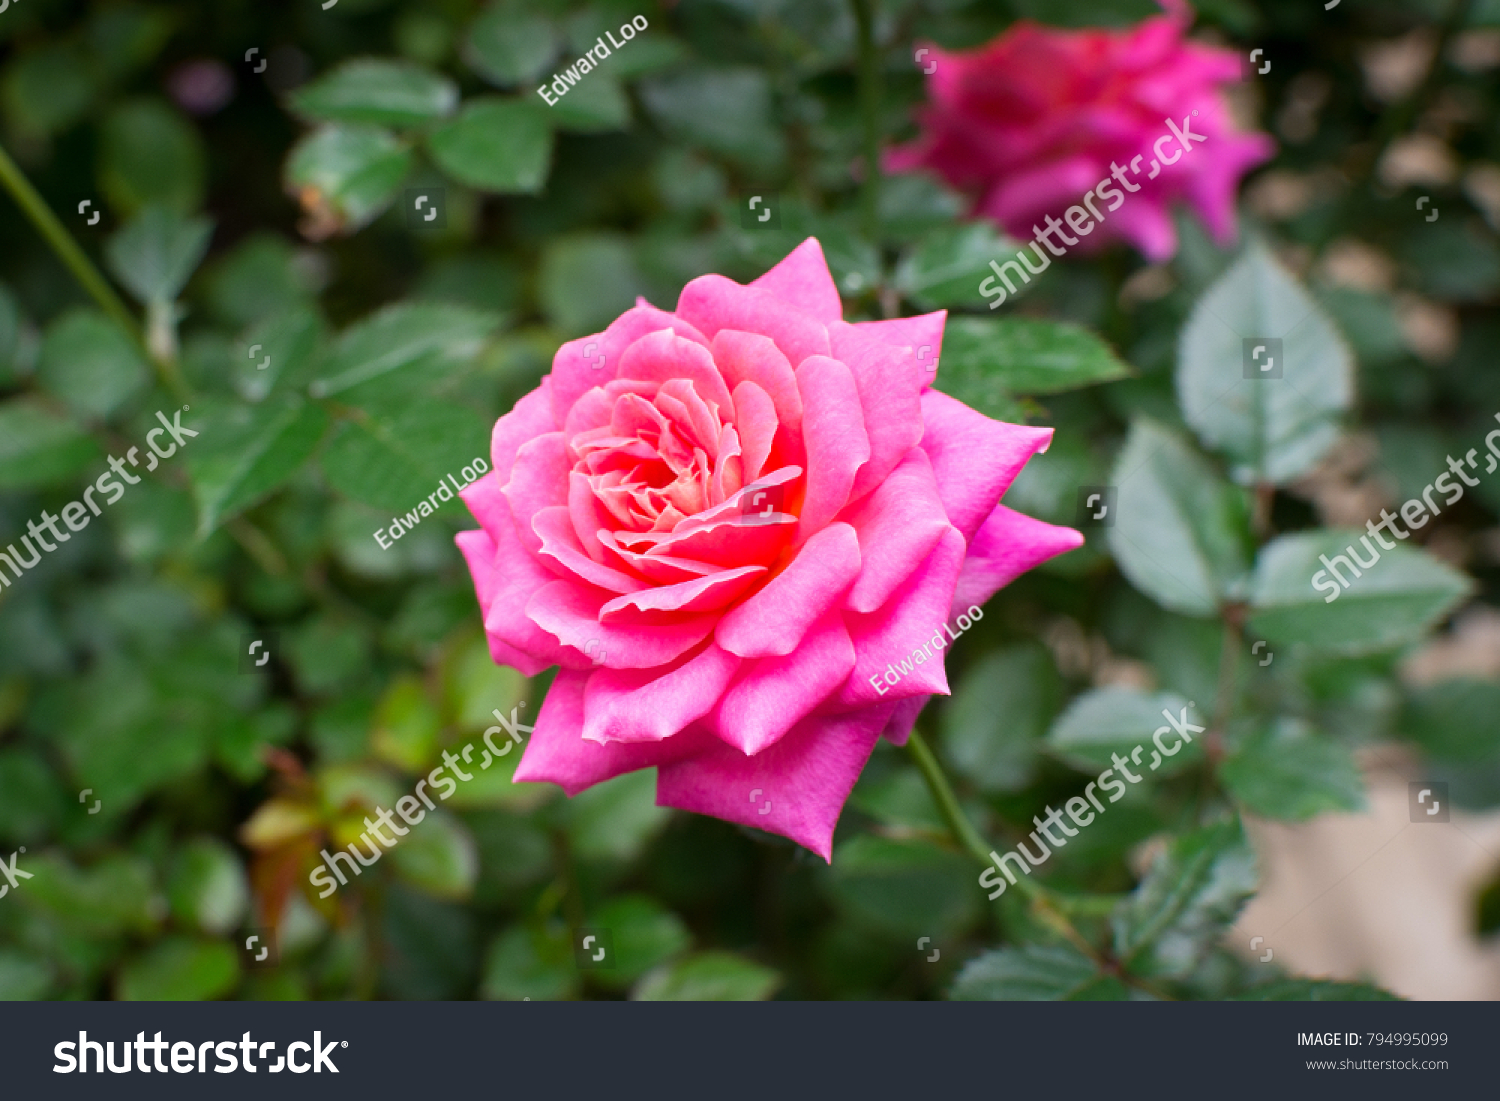 Beautiful Flower In The Park With Nice Bokeh Effect In The